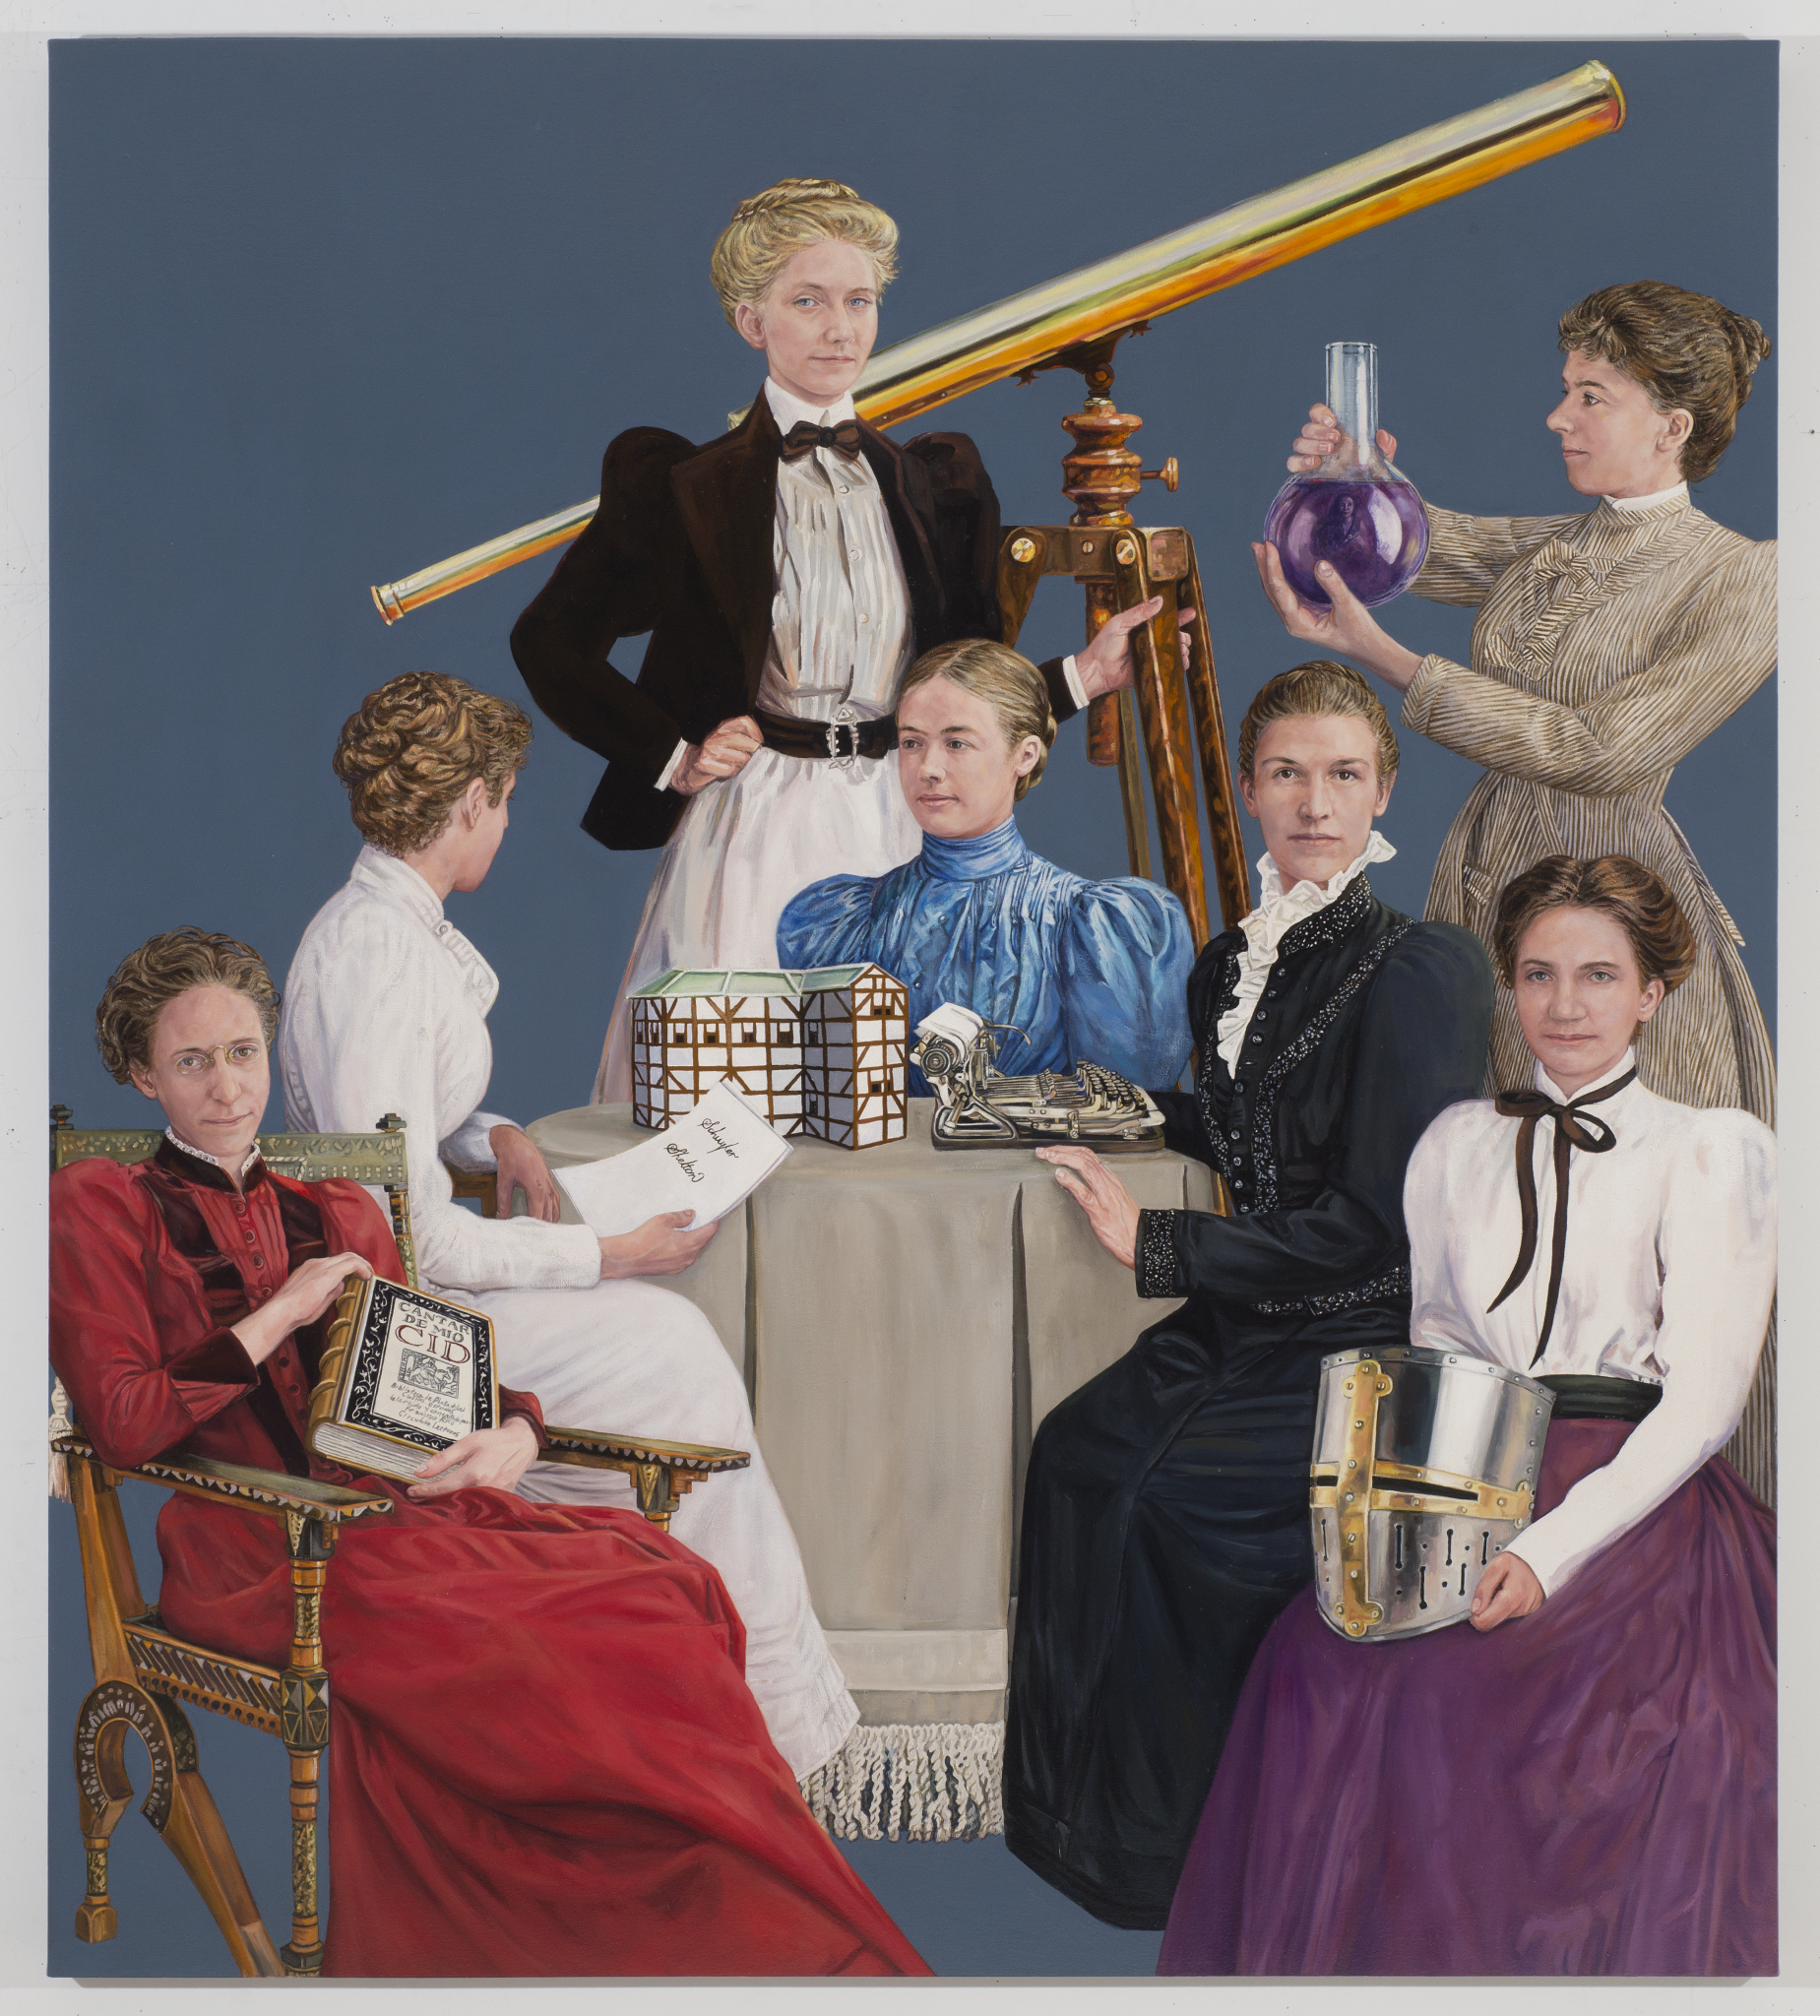 Brenda Zlamany's 2015 painting depicting the first seven female PhDs to graduate from Yale (Yale University Visitor Center)